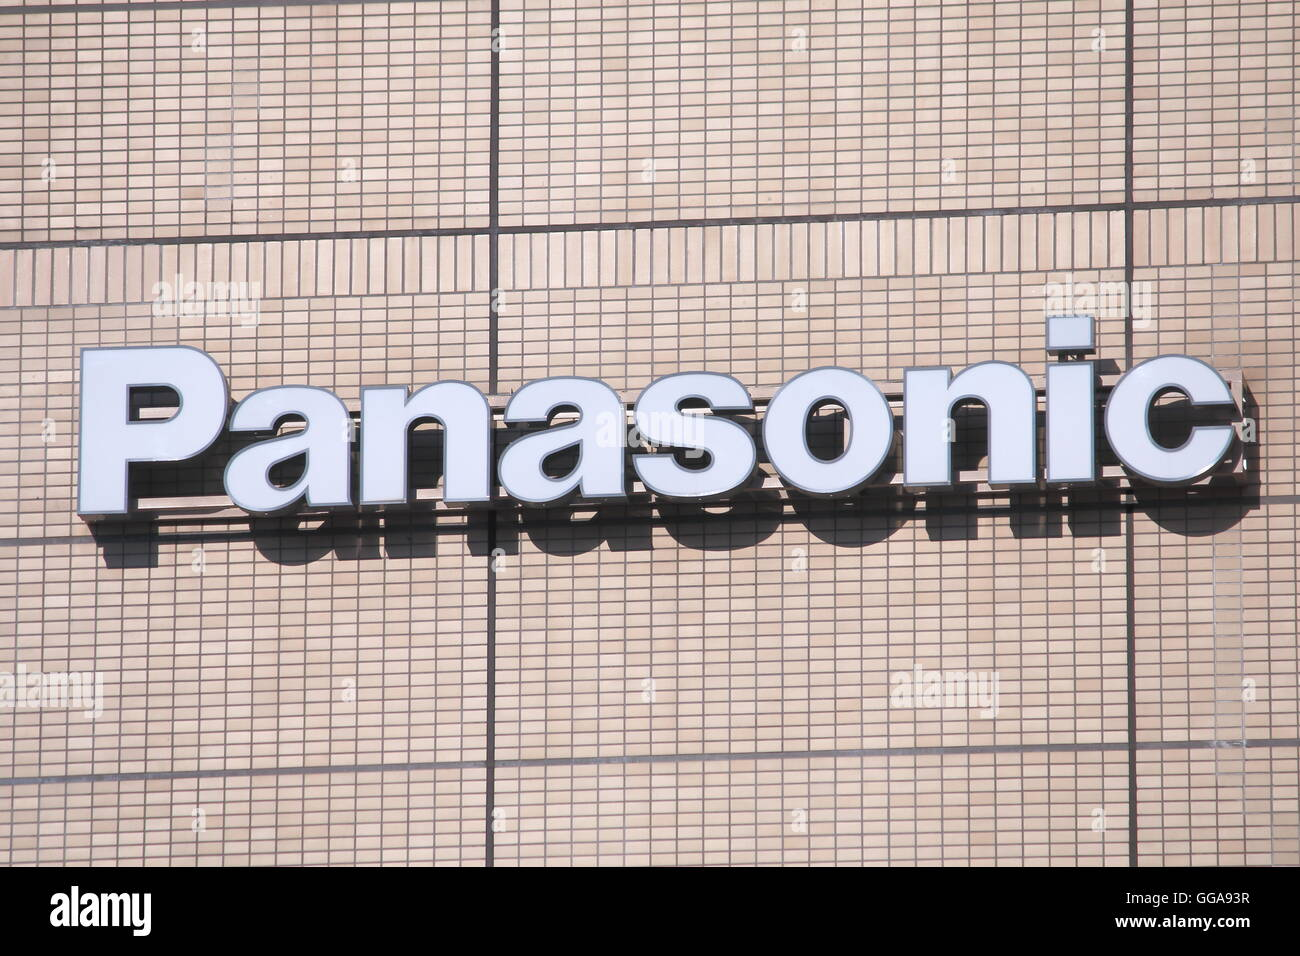 Panasonic company logo the principal brand name of the Japanese electronics manufacture Panasonic Corporation founded - Stock Image